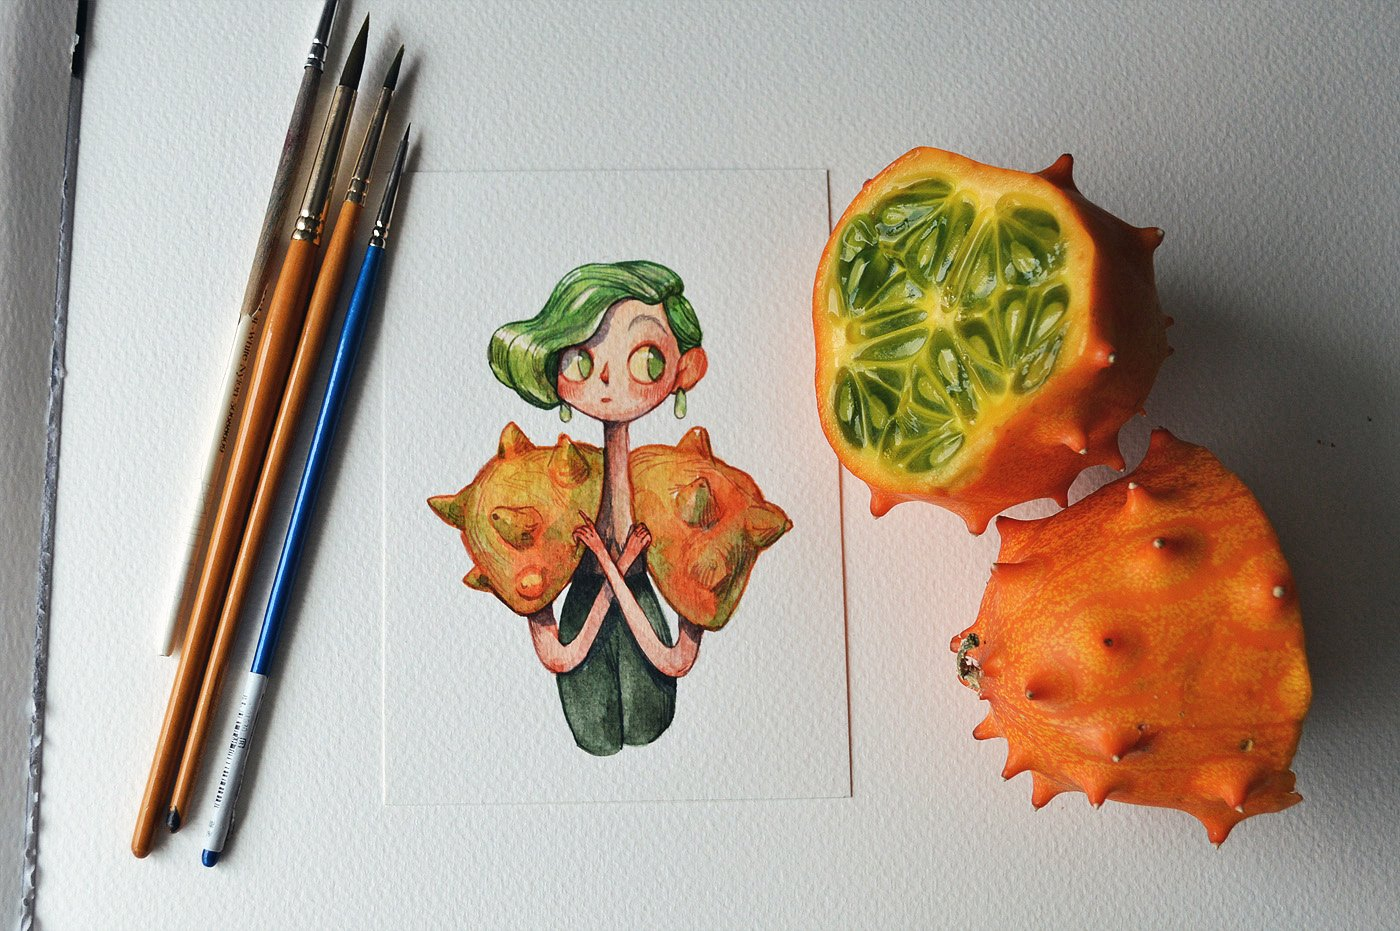 A curious horned melon--a cartoon character drew by Marija Tiurina